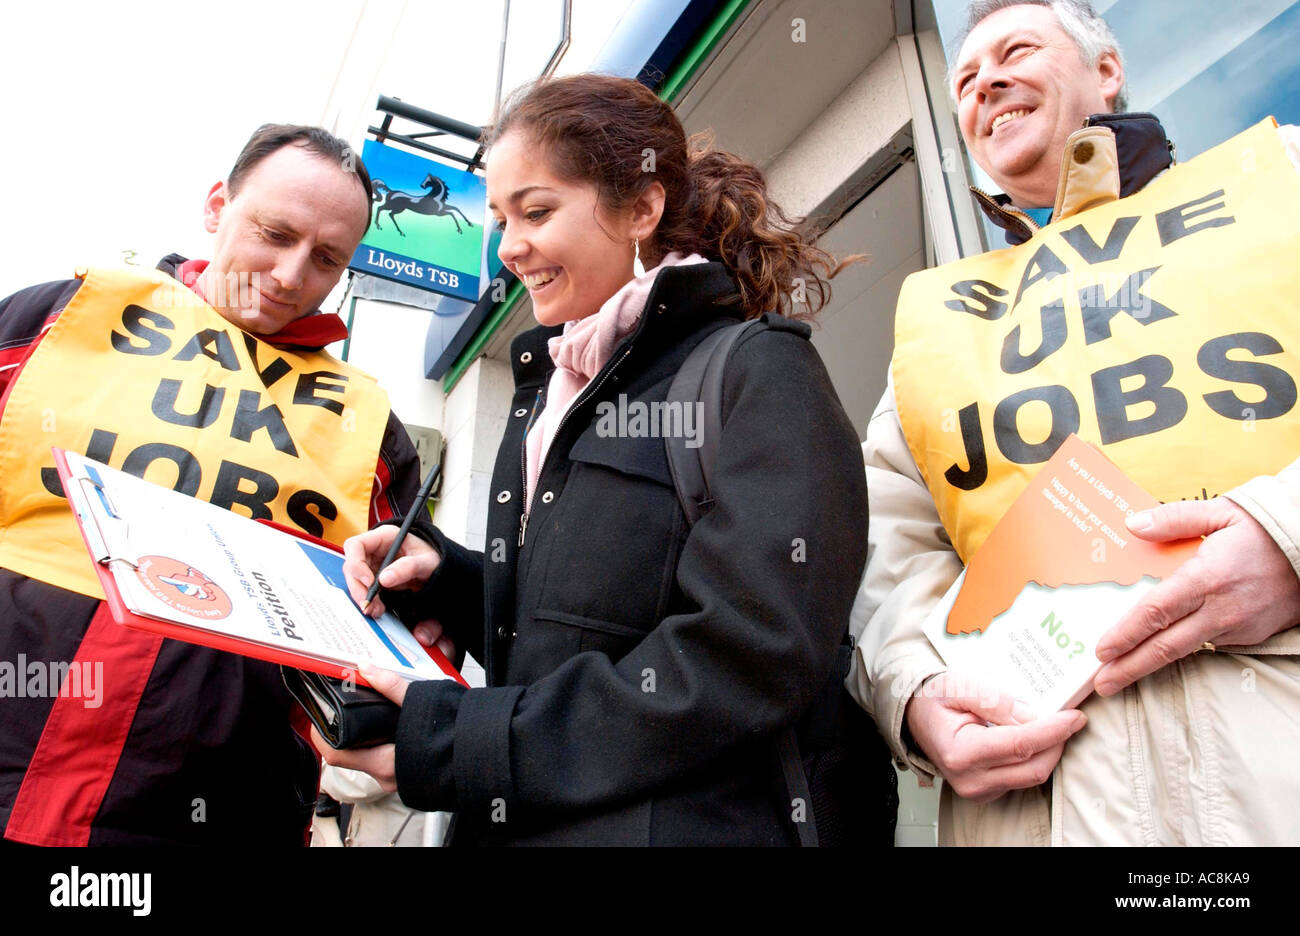 Trade union members protest about UK jobs being lost abroad to foreign workers - Stock Image